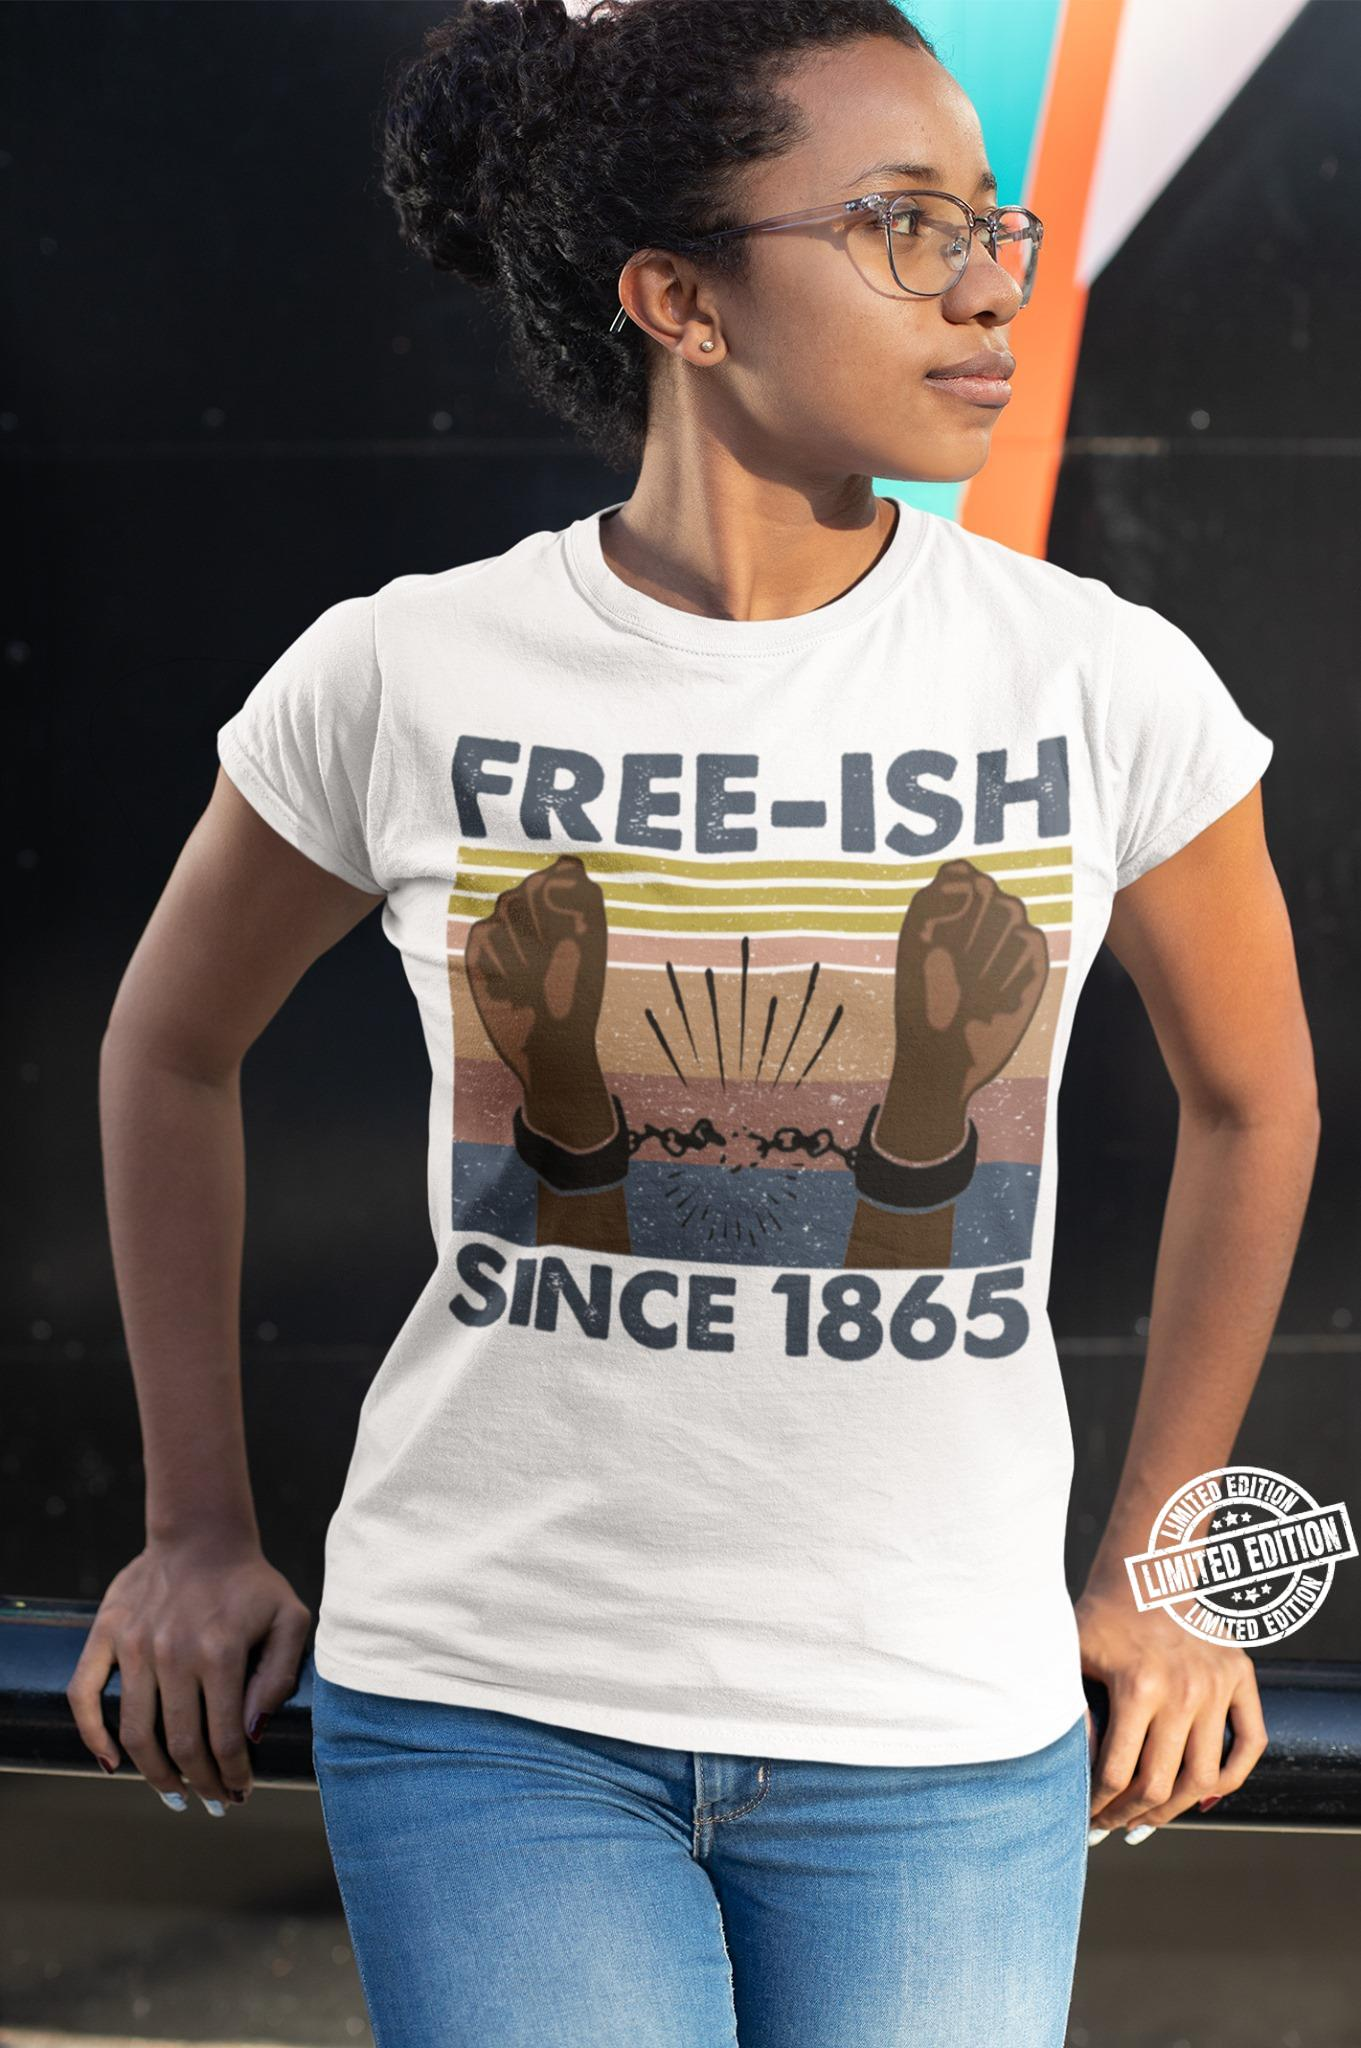 Official Free-ish since 1865 shirt